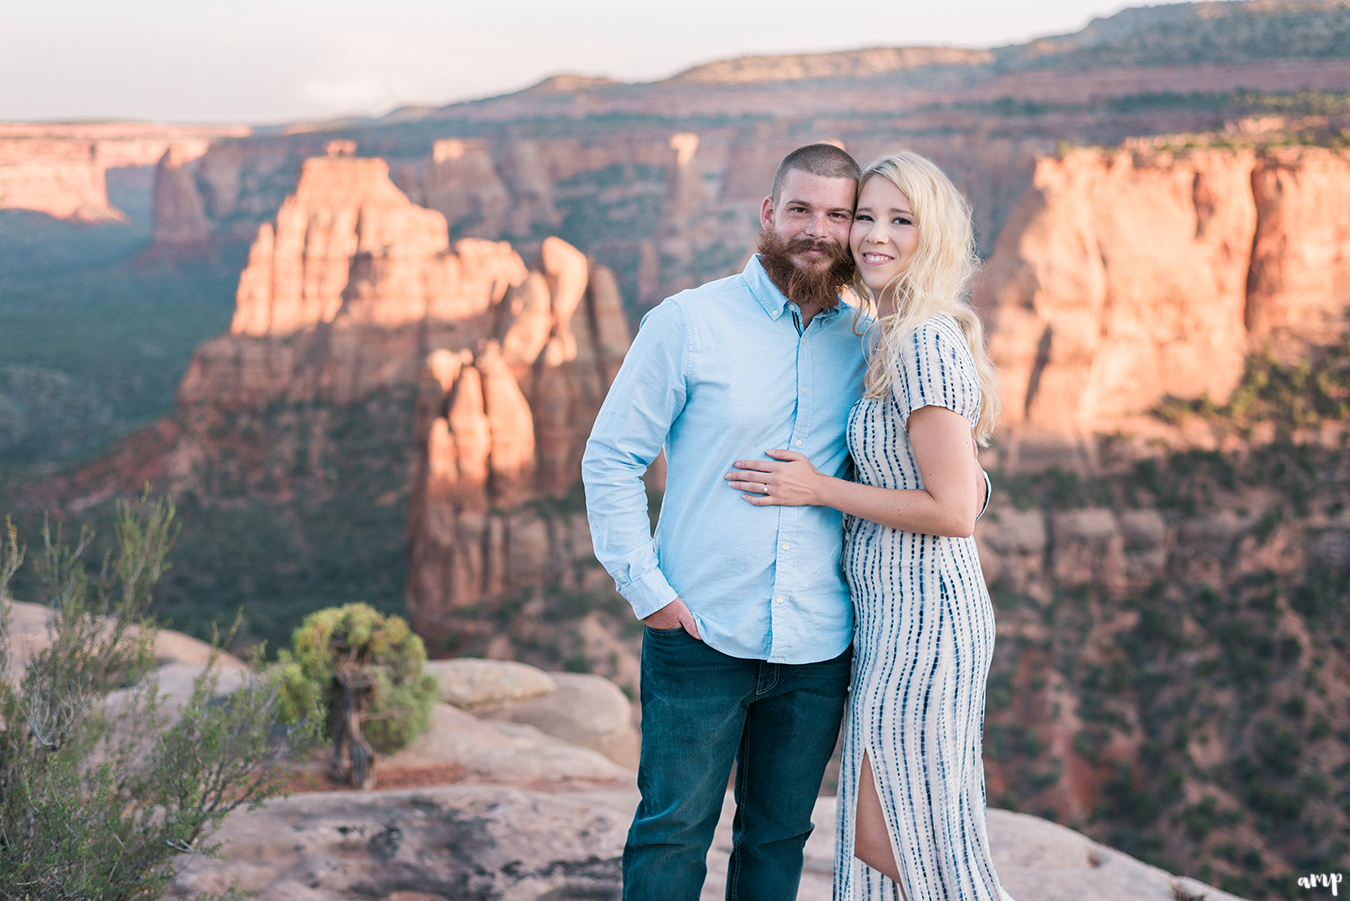 Engaged couple in the Colorado National Monument arm in arm